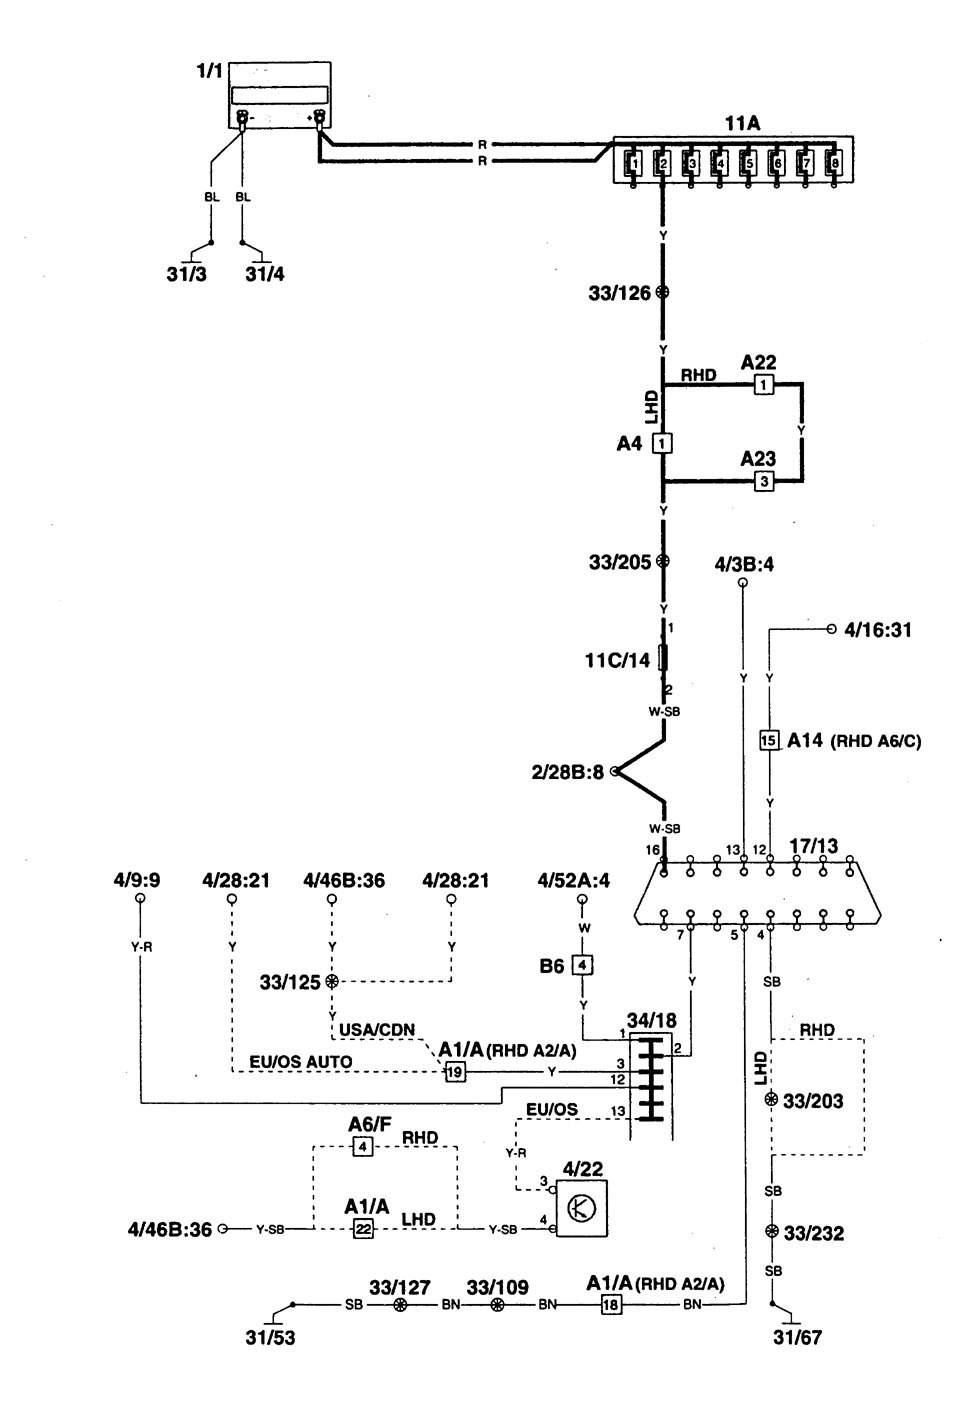 household wiring diagrams computer wiring diagram computer volvo 960 1997 wiring diagrams computer data lines